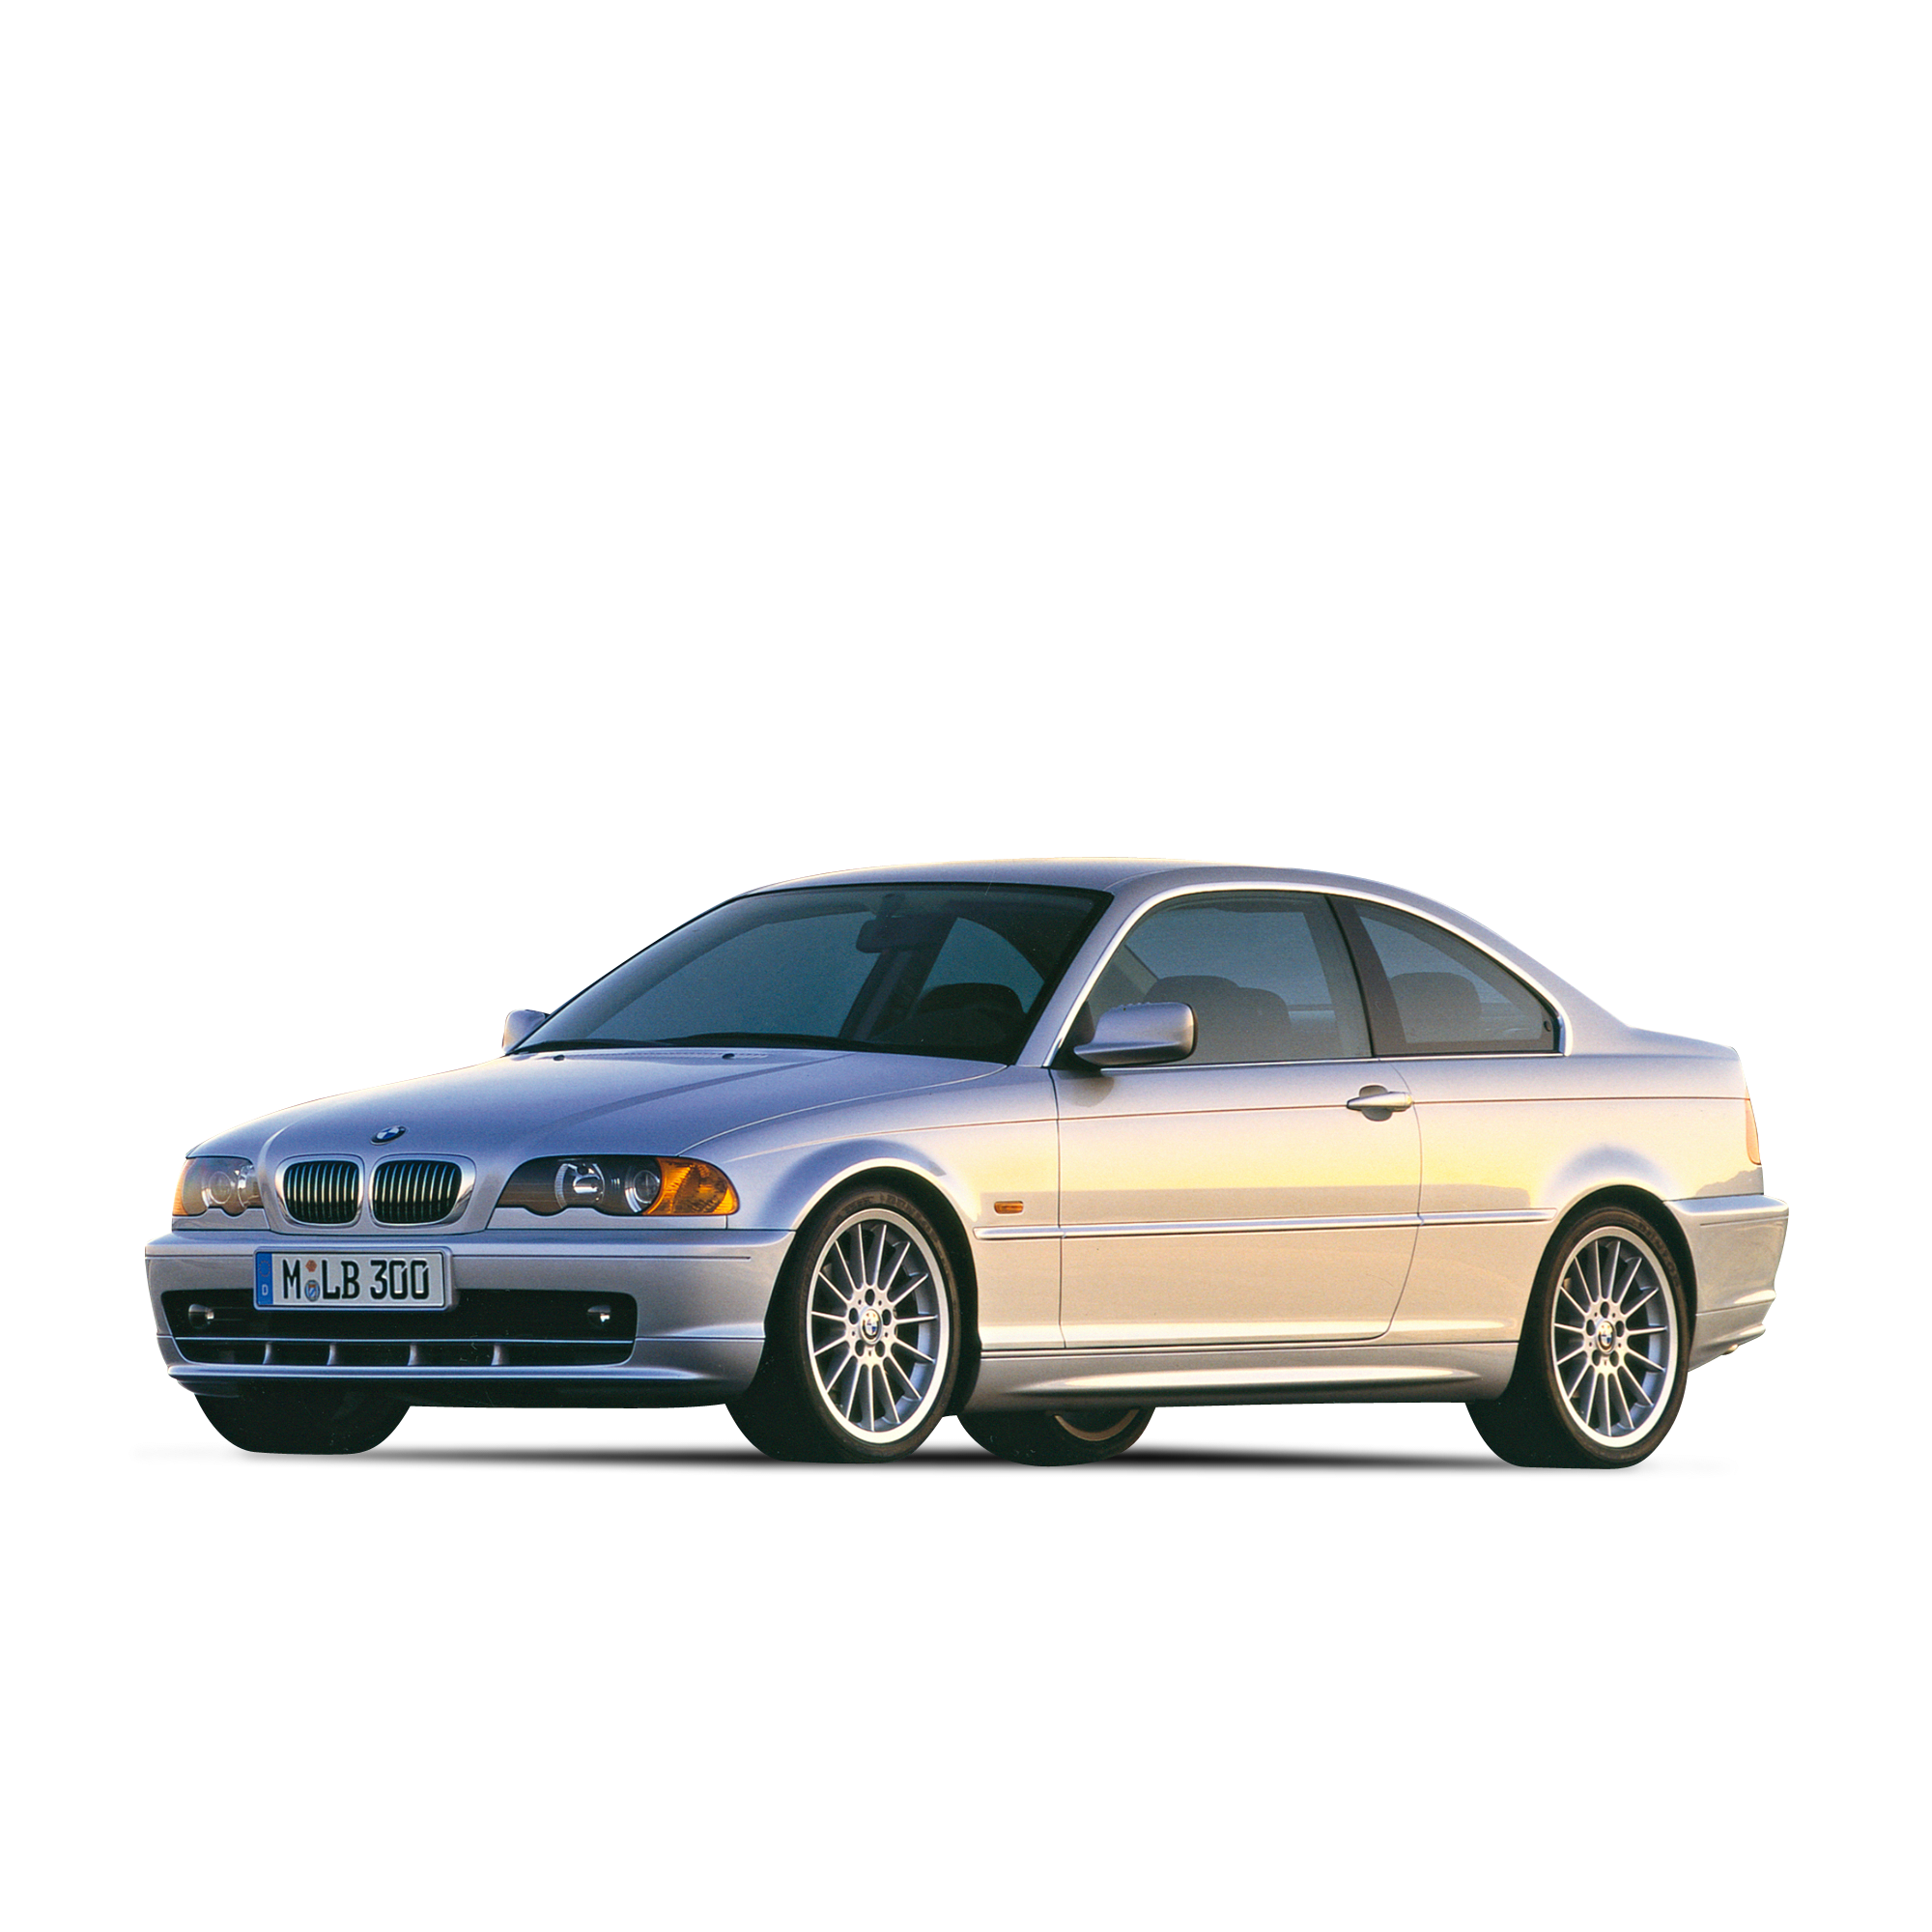 Bmw 325ci Specs Review For Sale Price Models Carsguide